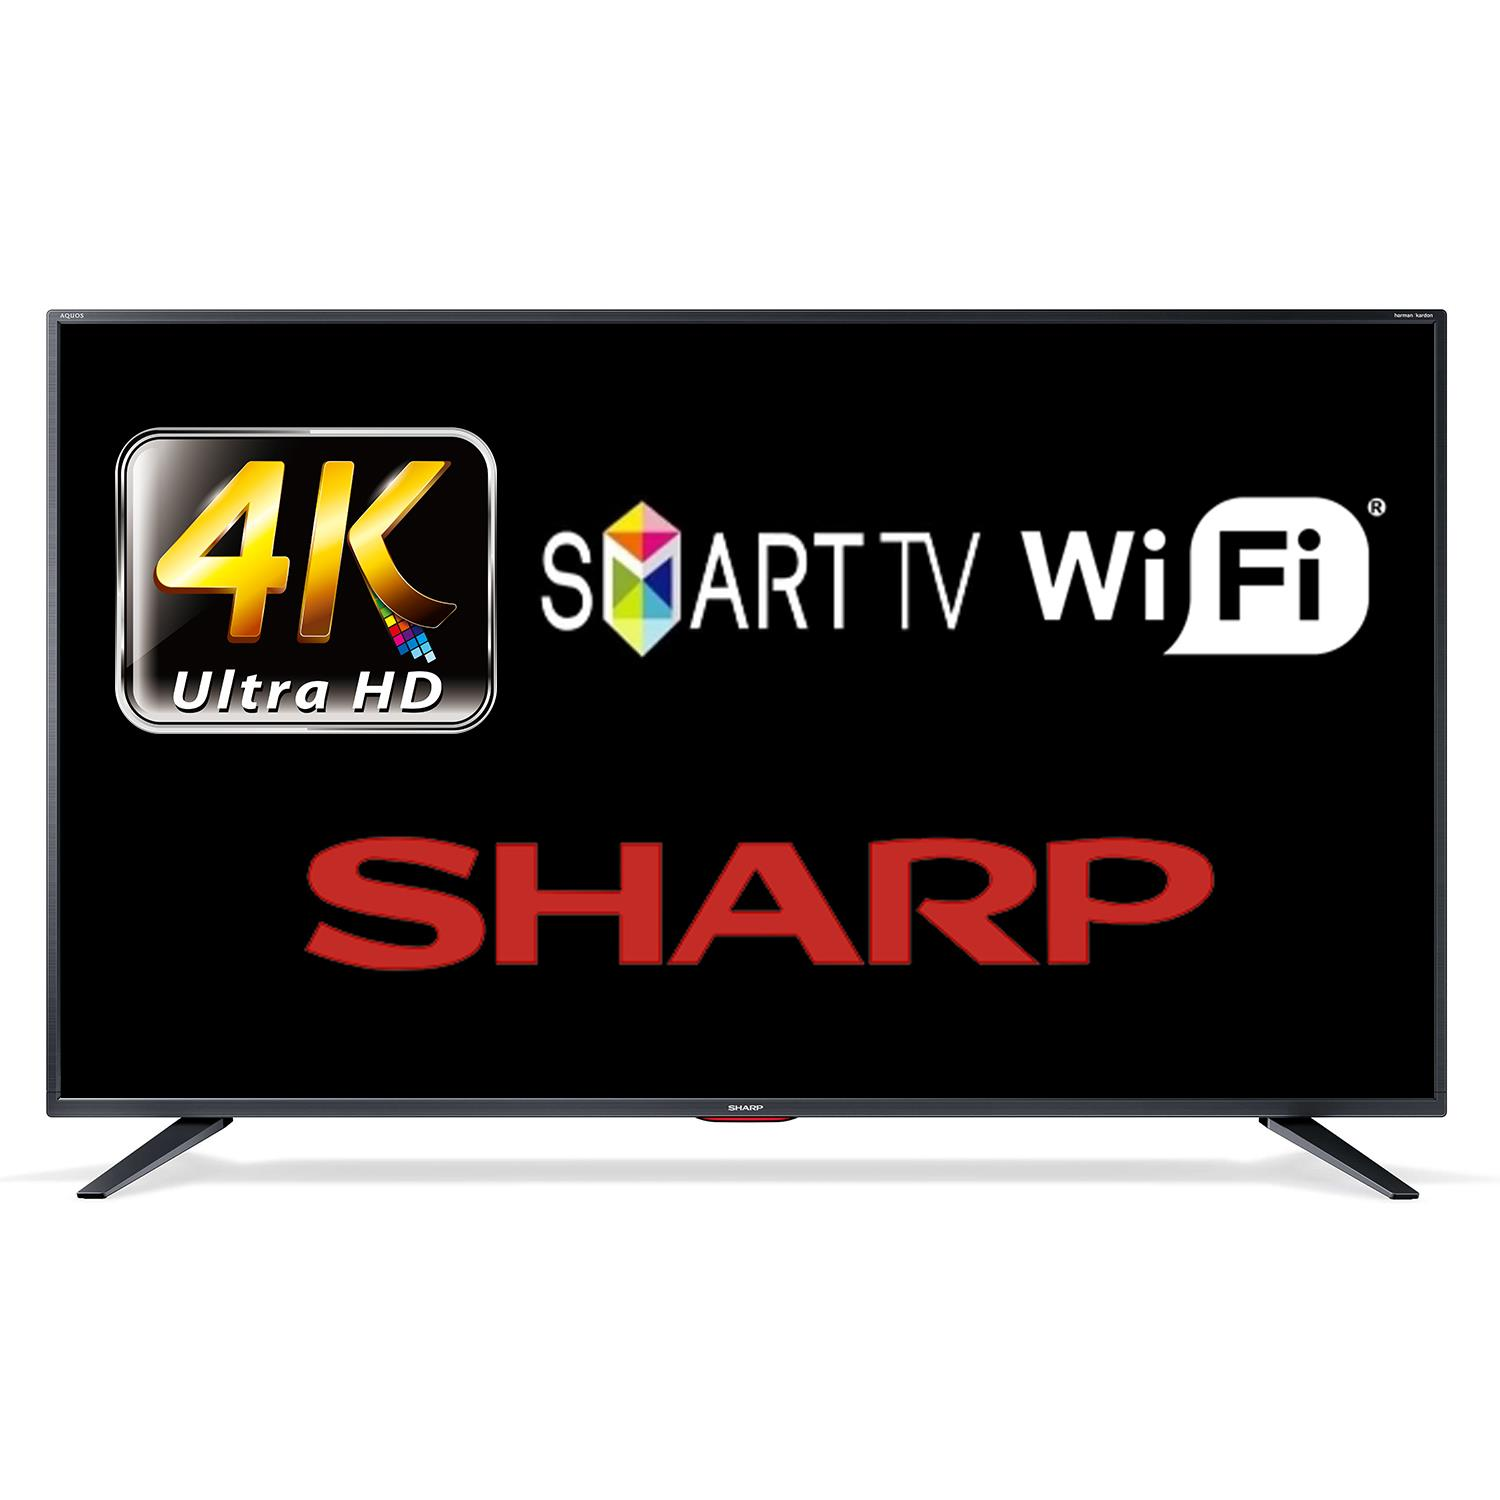 SHARP 49BJ5K 125CM 4K, UHD WIFI SMART LED TV ! AKCIÓ!